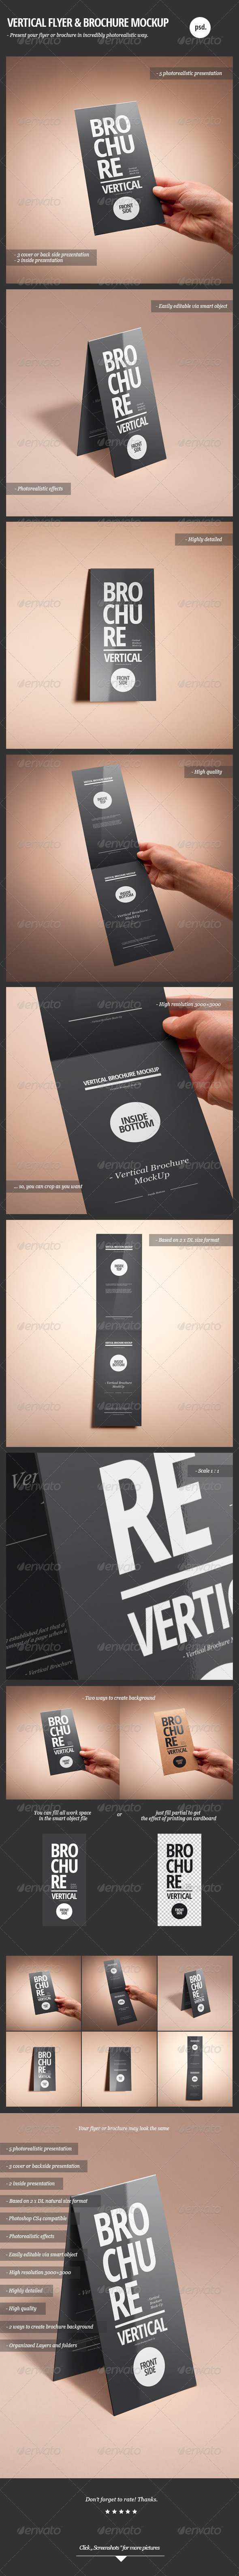 Vertical Flyer & Brochure Mock-Up - Brochures Print